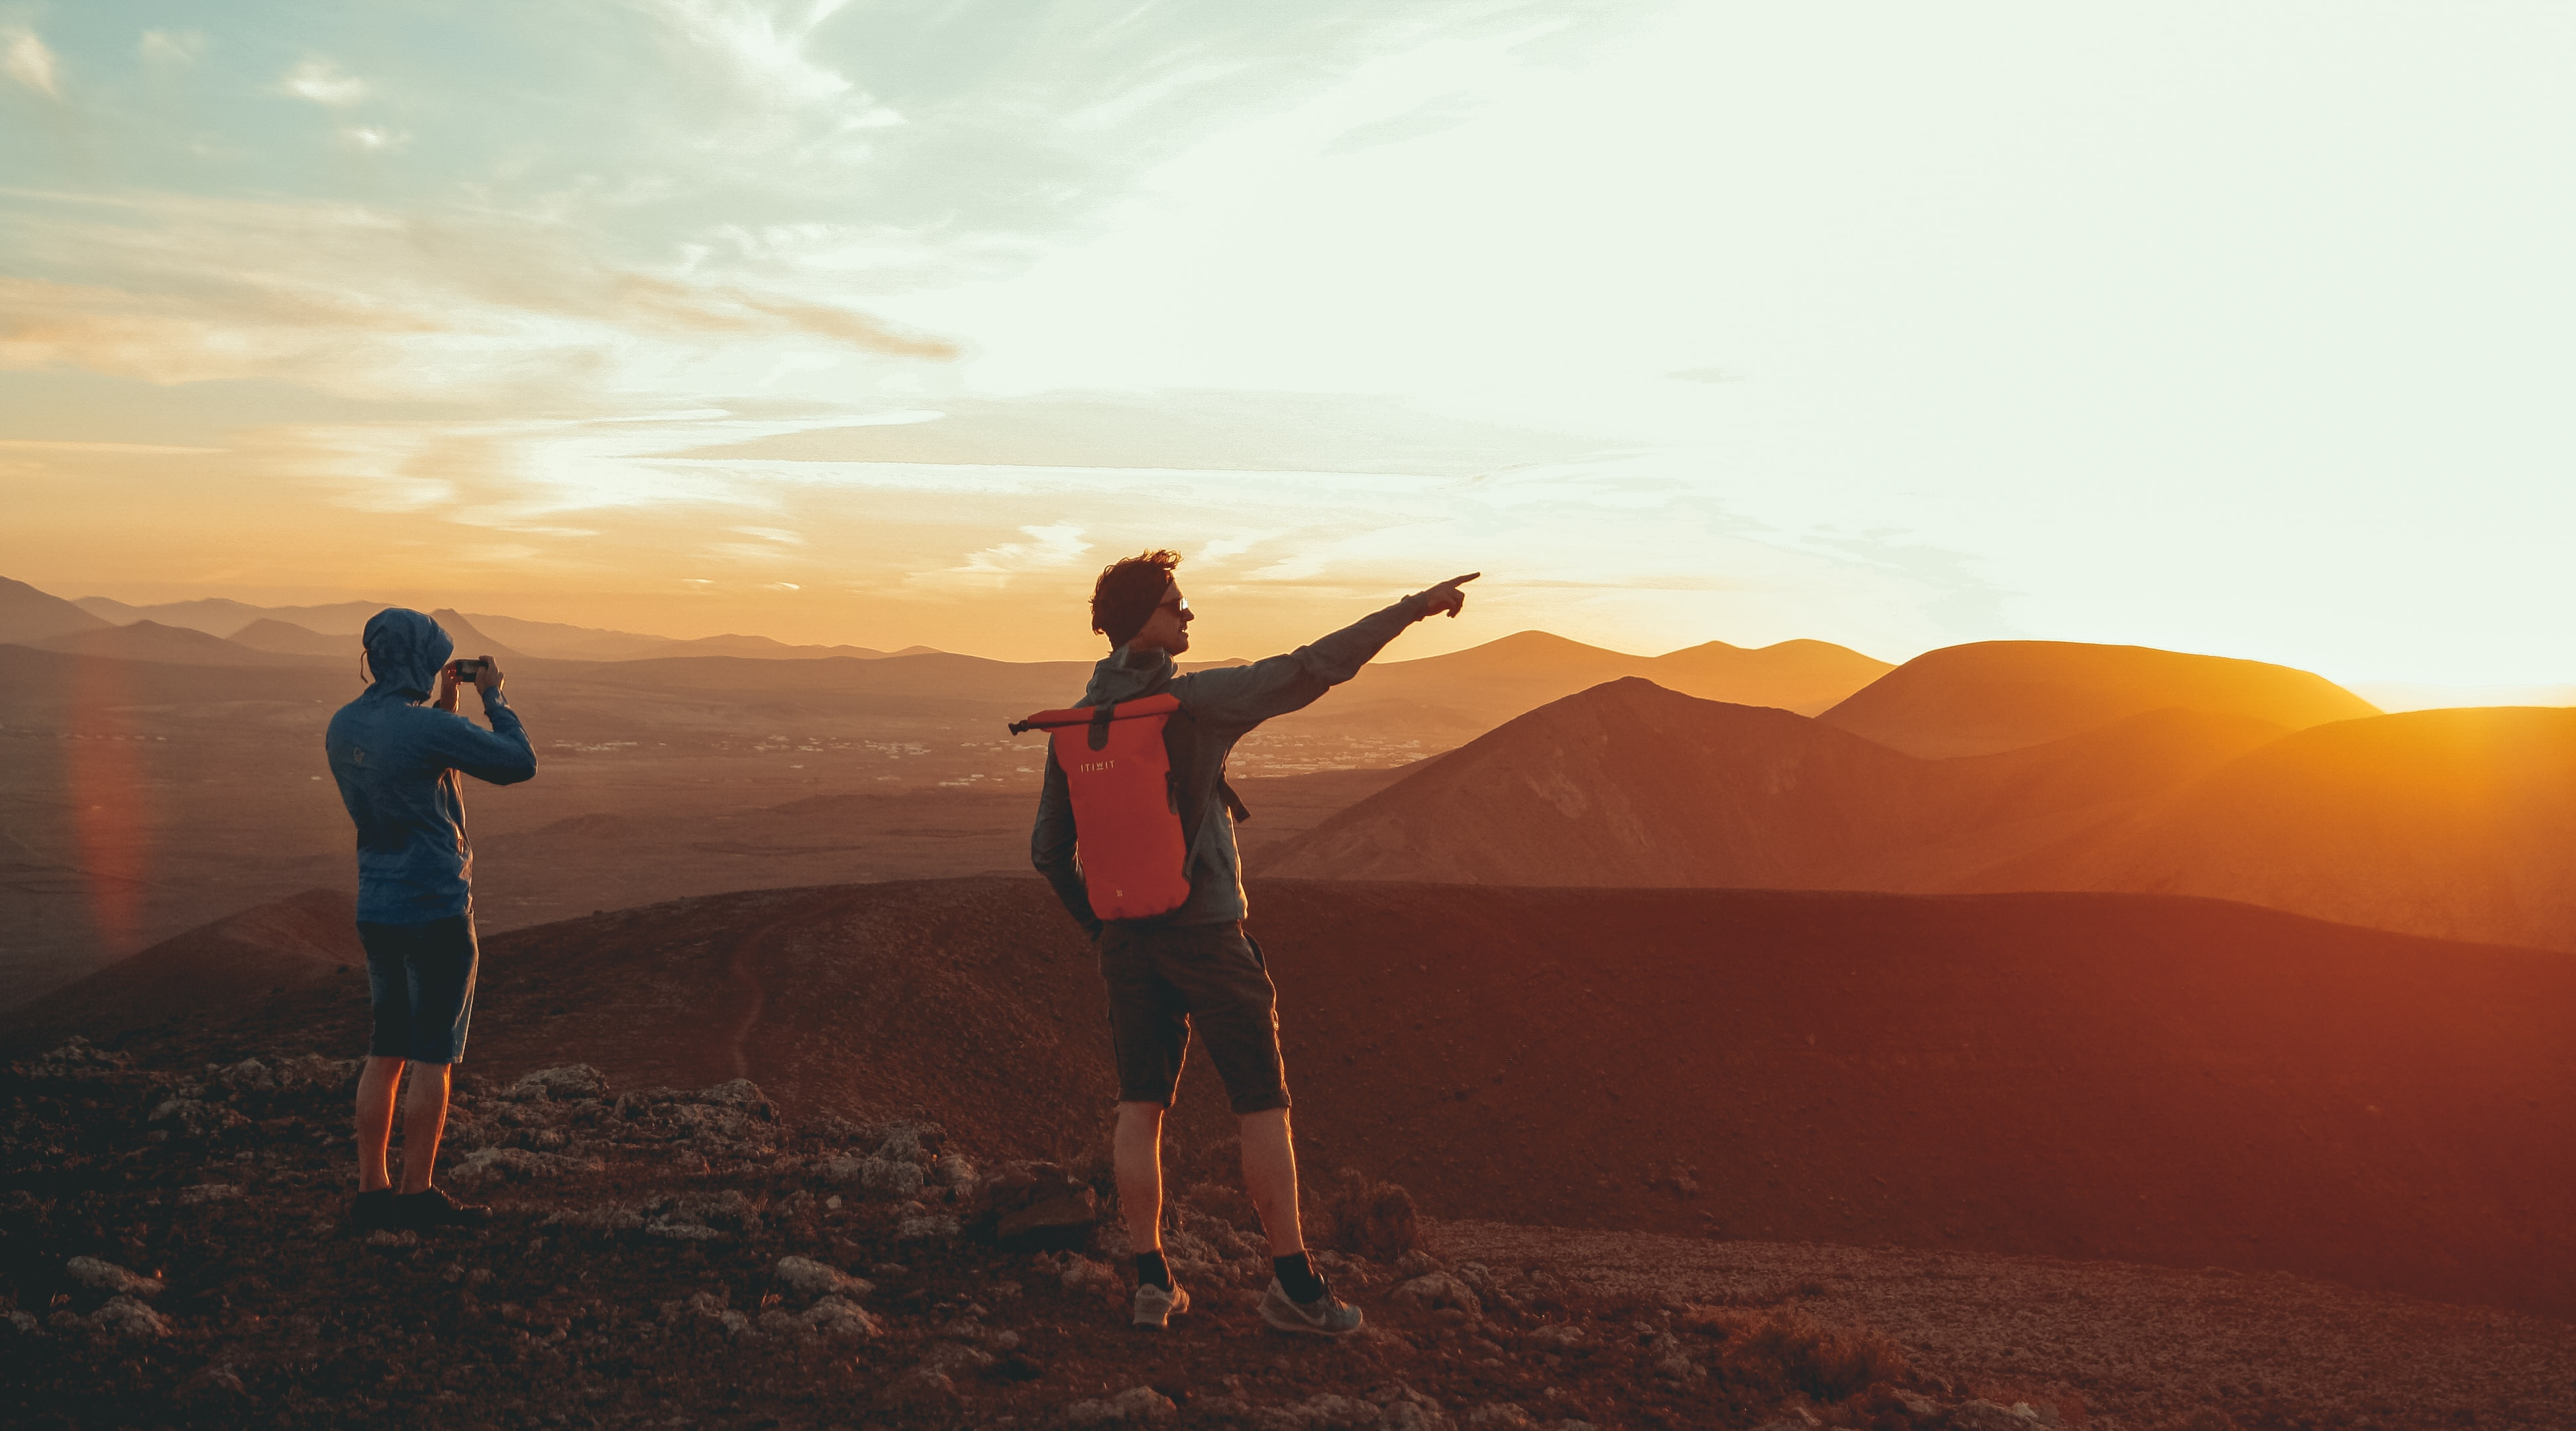 two person standing on mountain during sunset